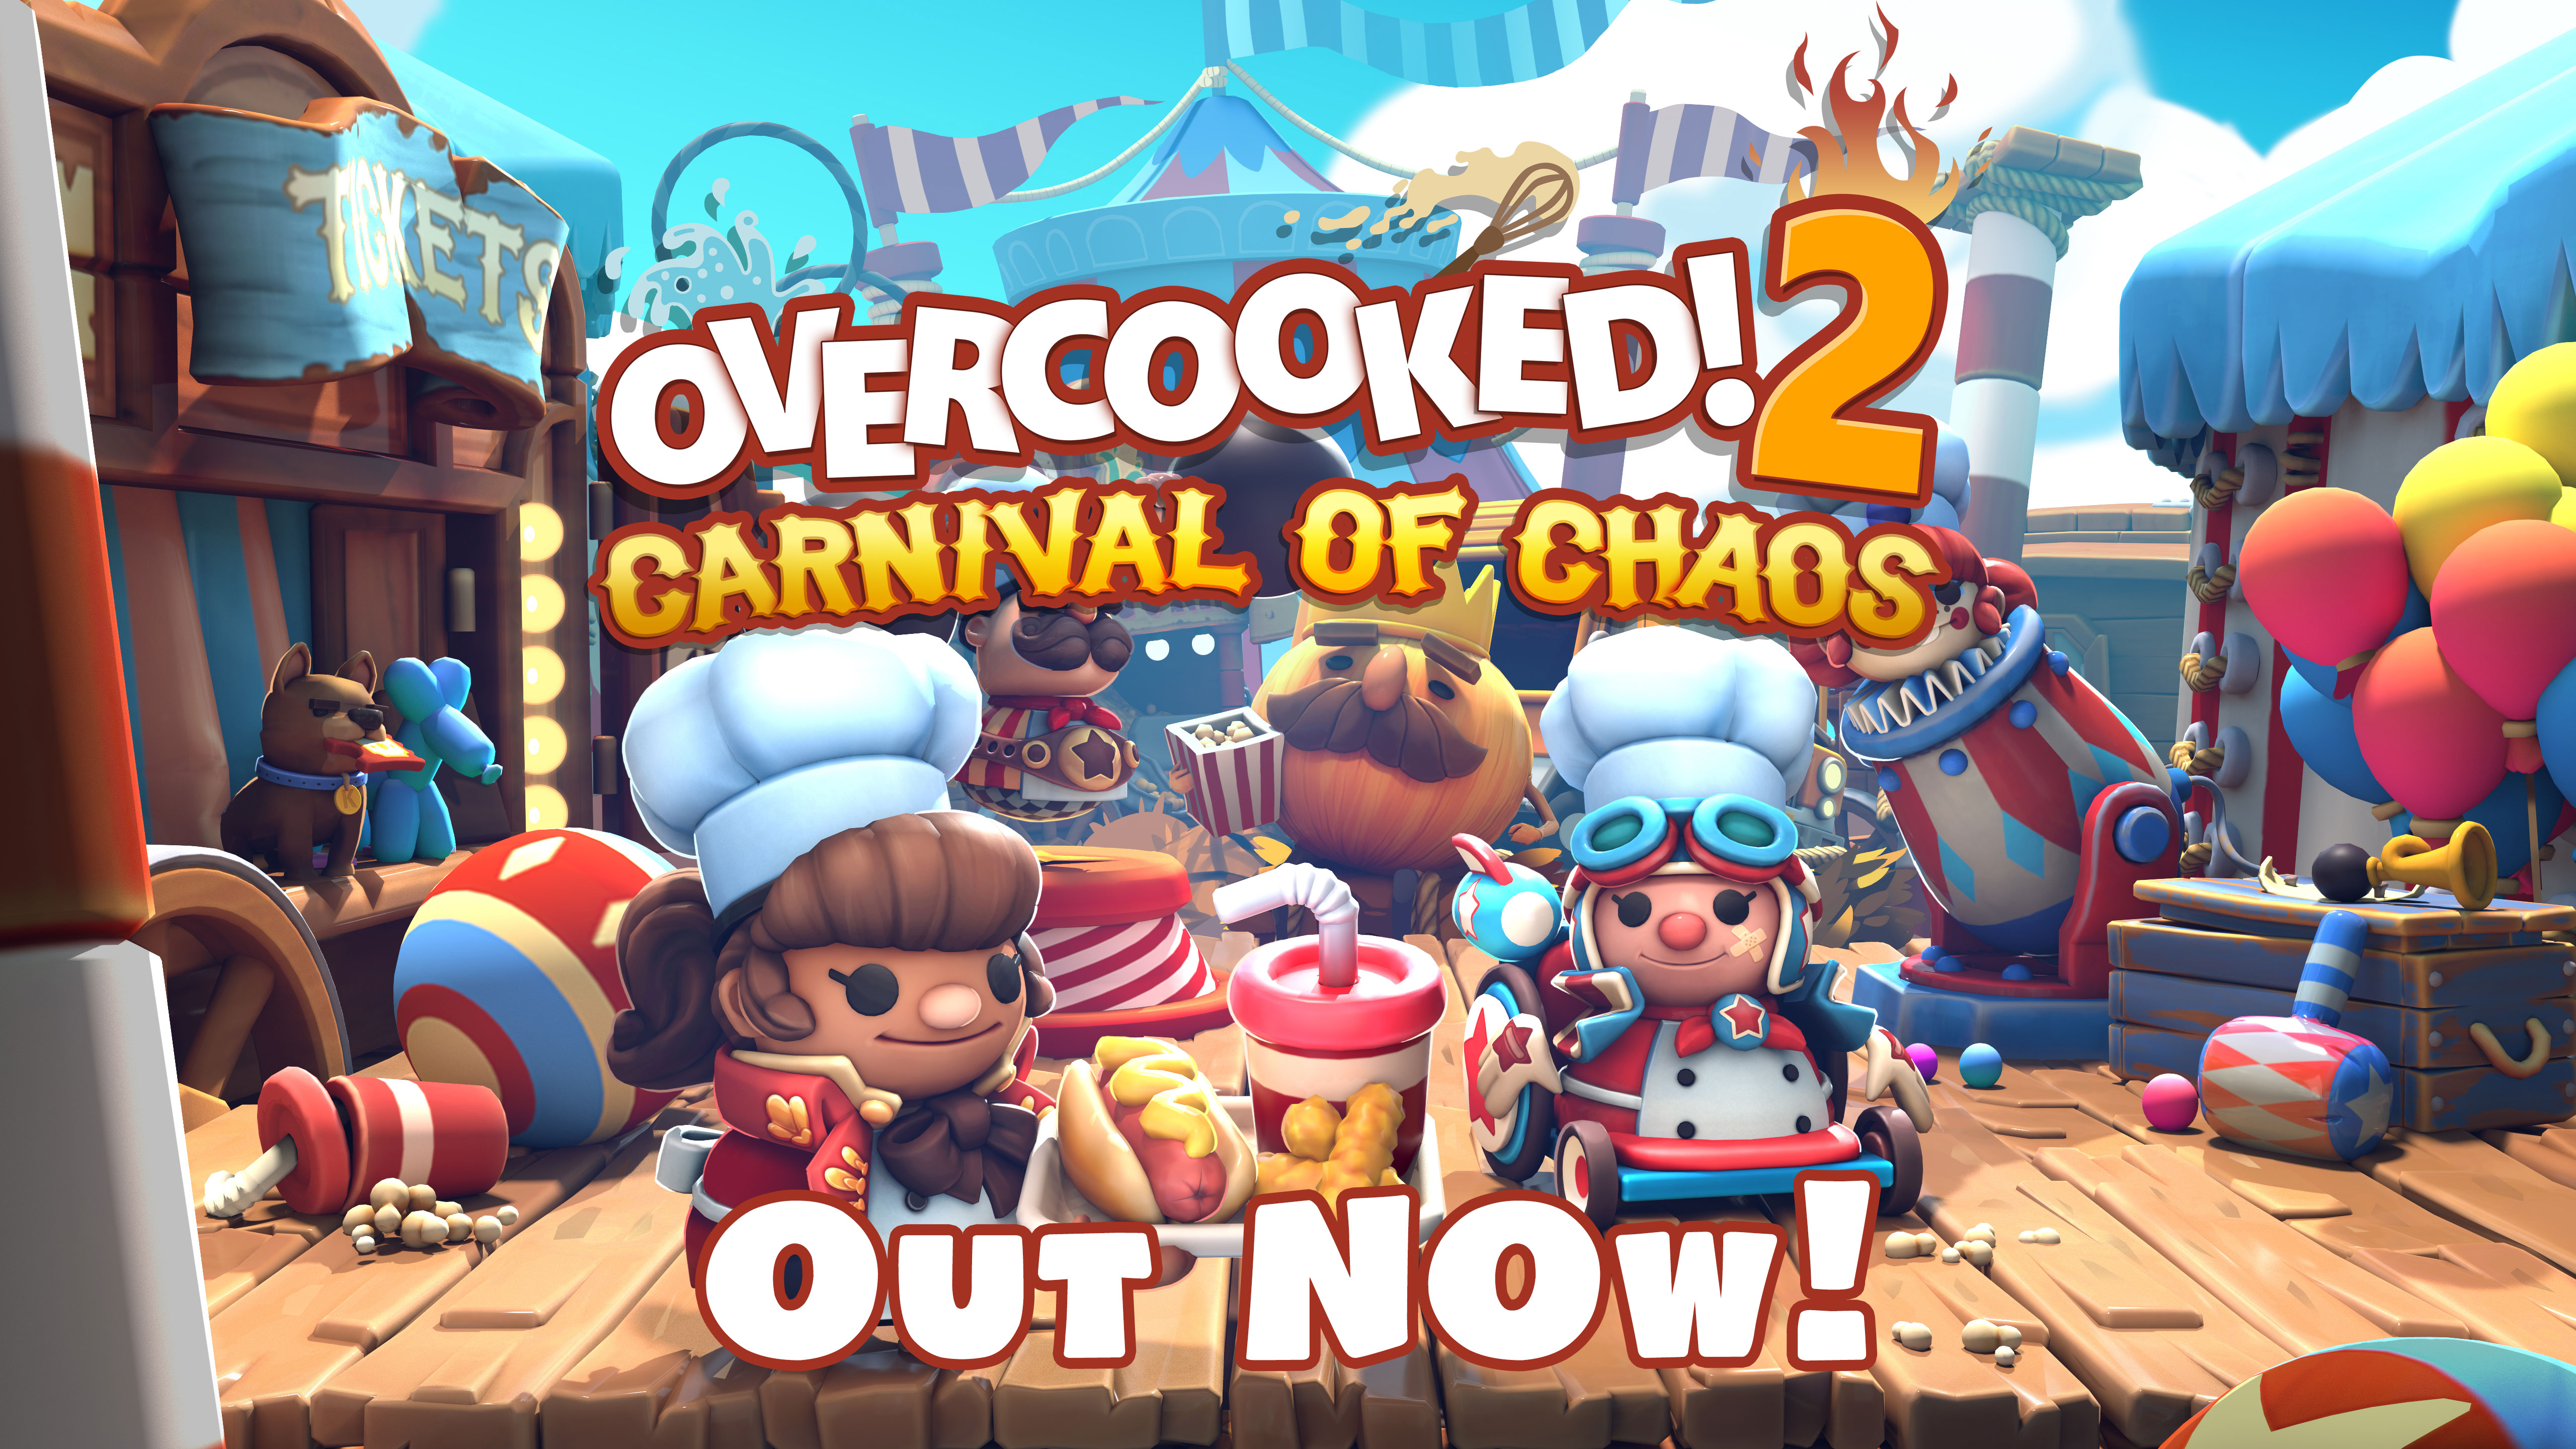 Overcooked! 2 Carnival of Chaos DLC – Out Now!